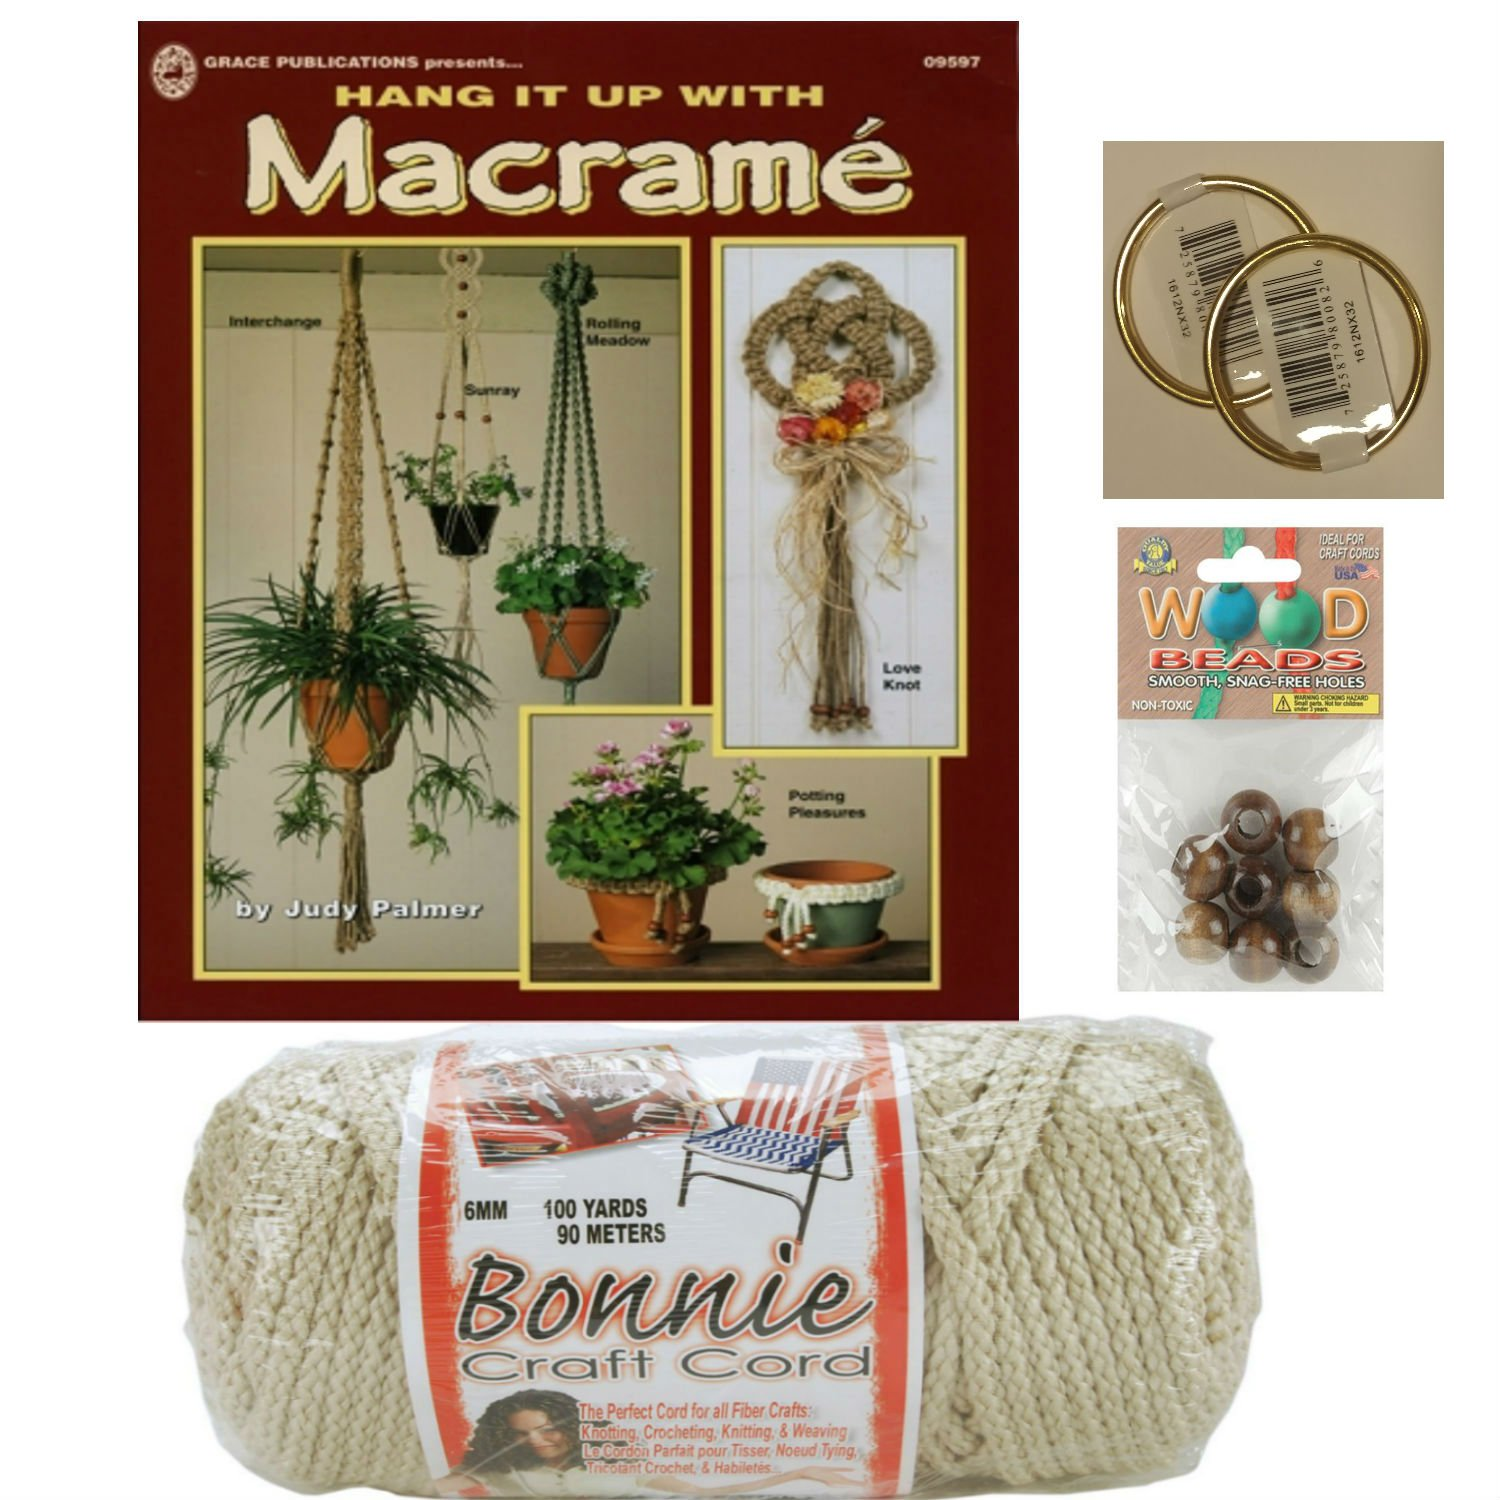 Macrame kit bundle with Craft Cord, Wooden Beads, Rings, and Project Book for plant hangers and wall hangings (pottery)